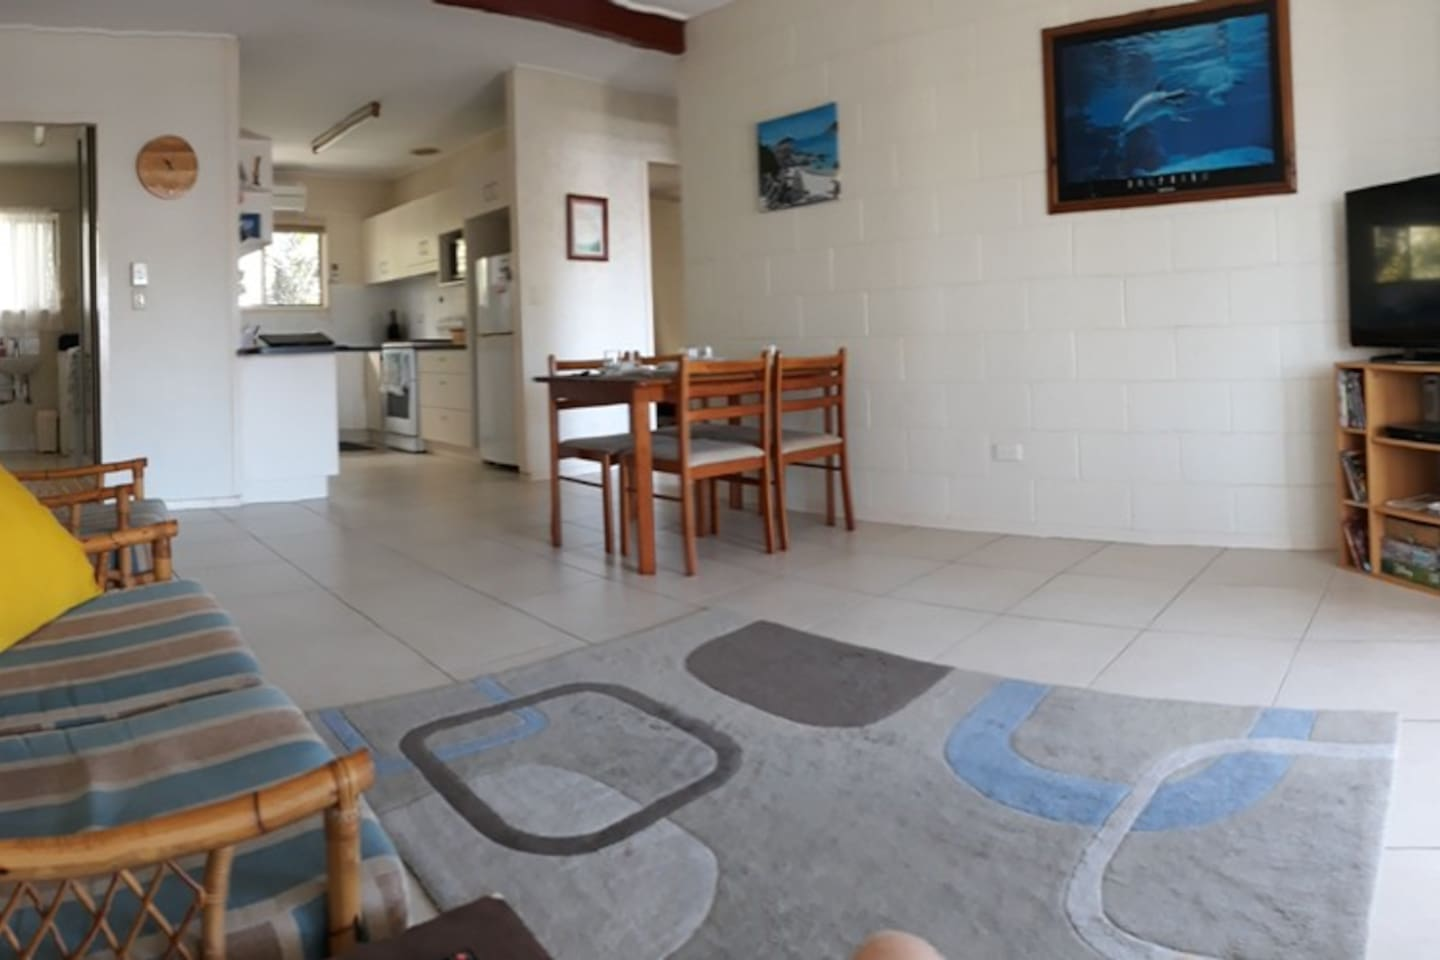 Panorama view of unit from the seating area looking towards the kitchen, laundry/shower room and the bedrooms with the sun-room behind